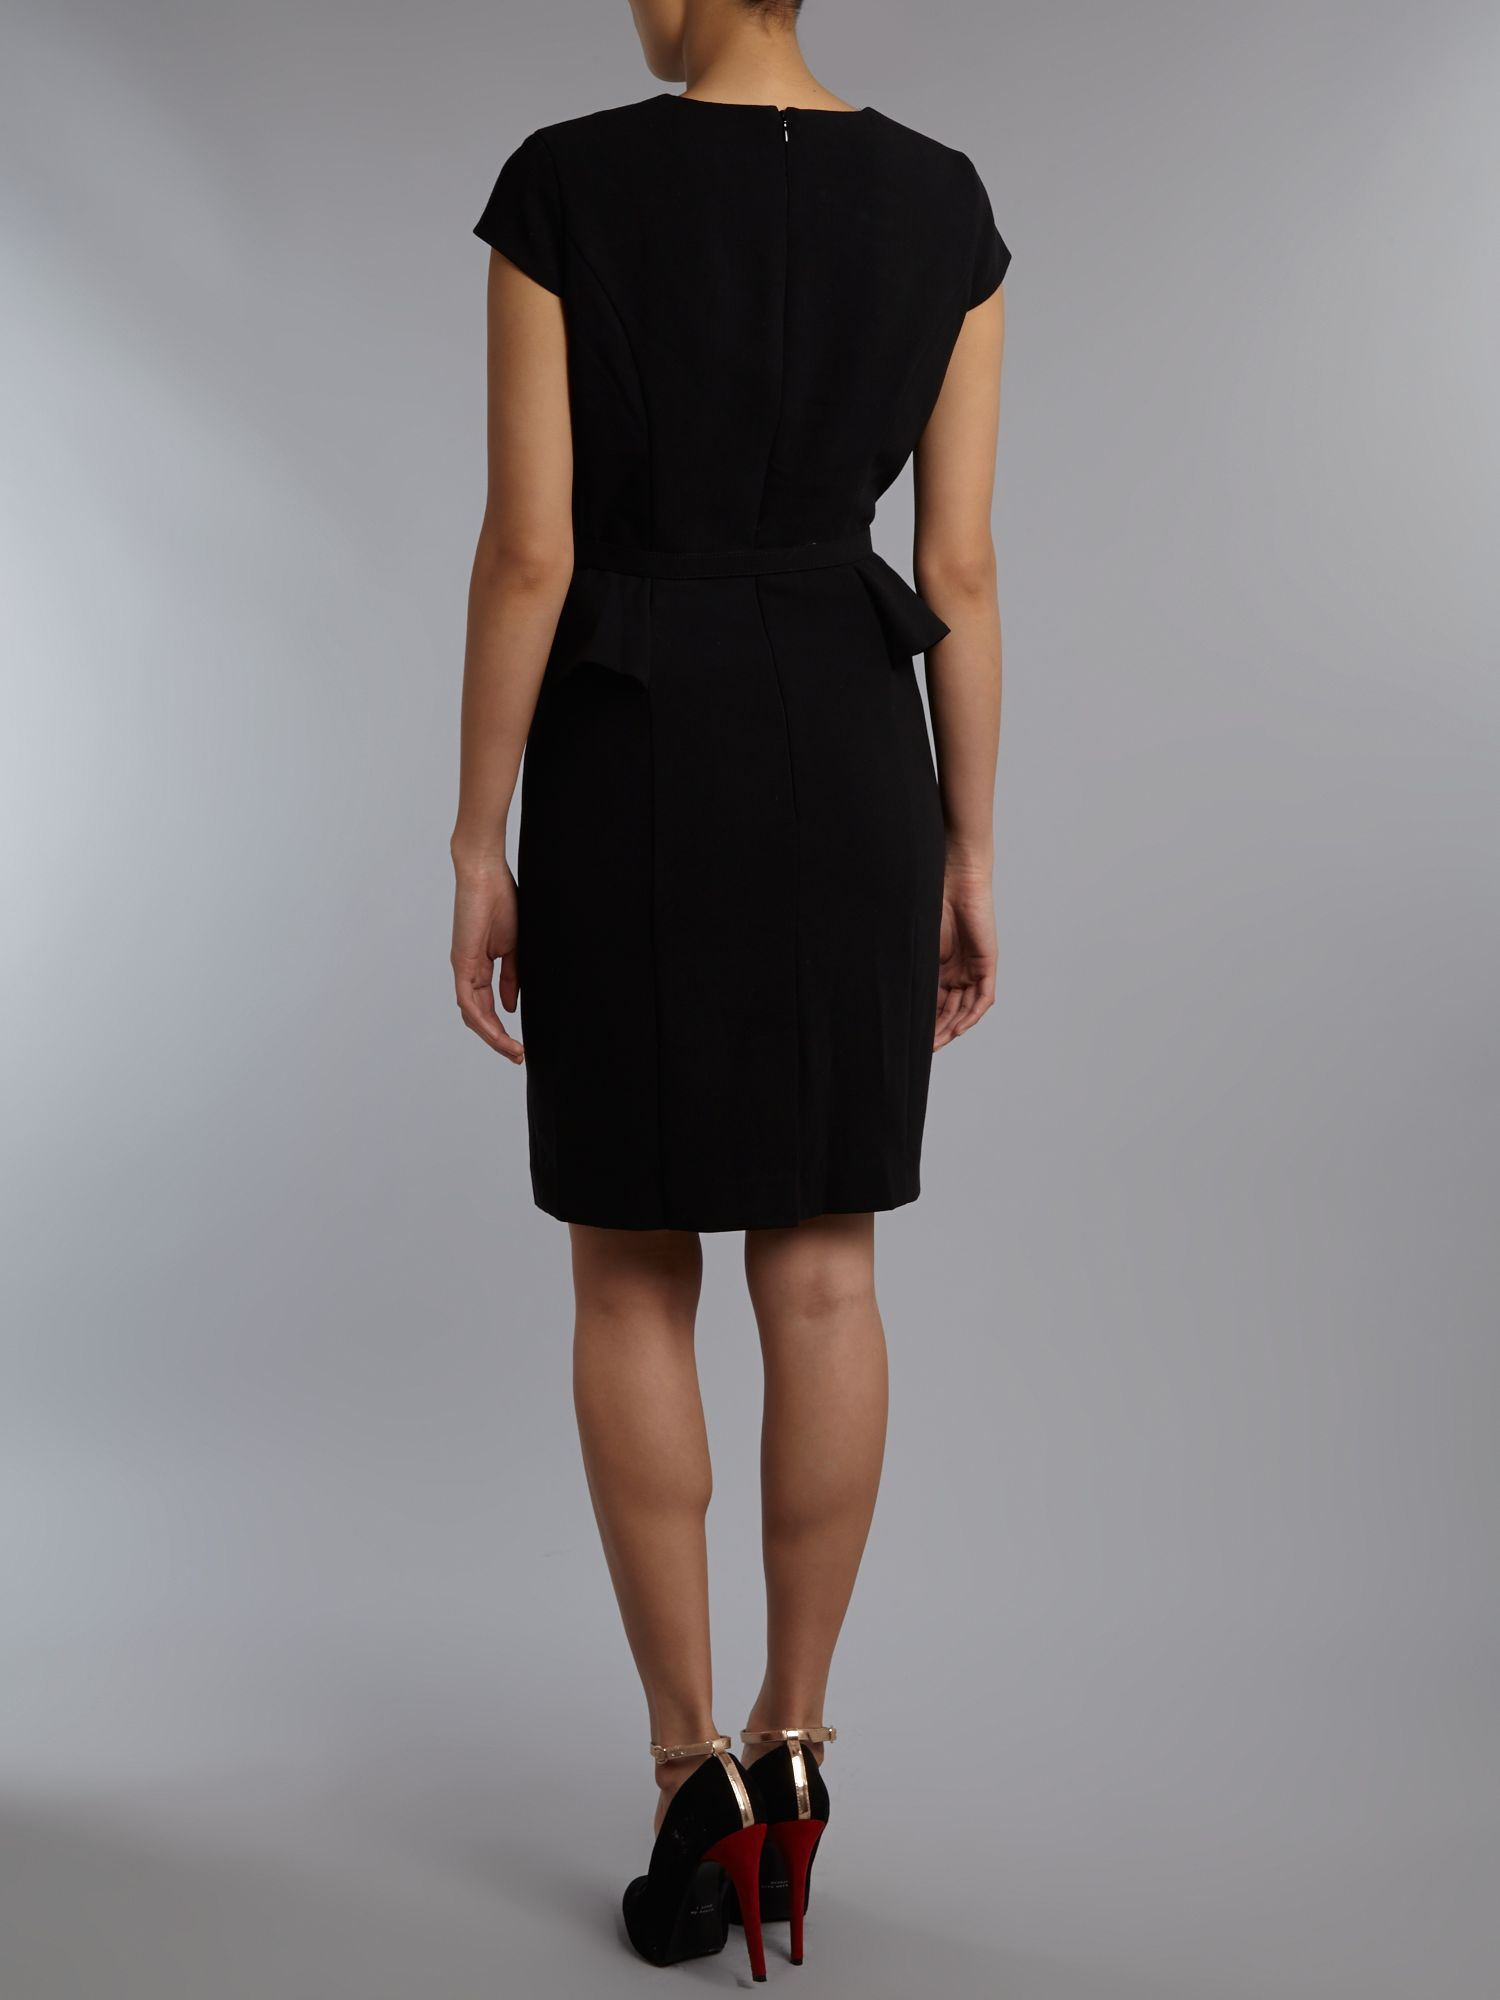 papell peplum dress with belt in black lyst